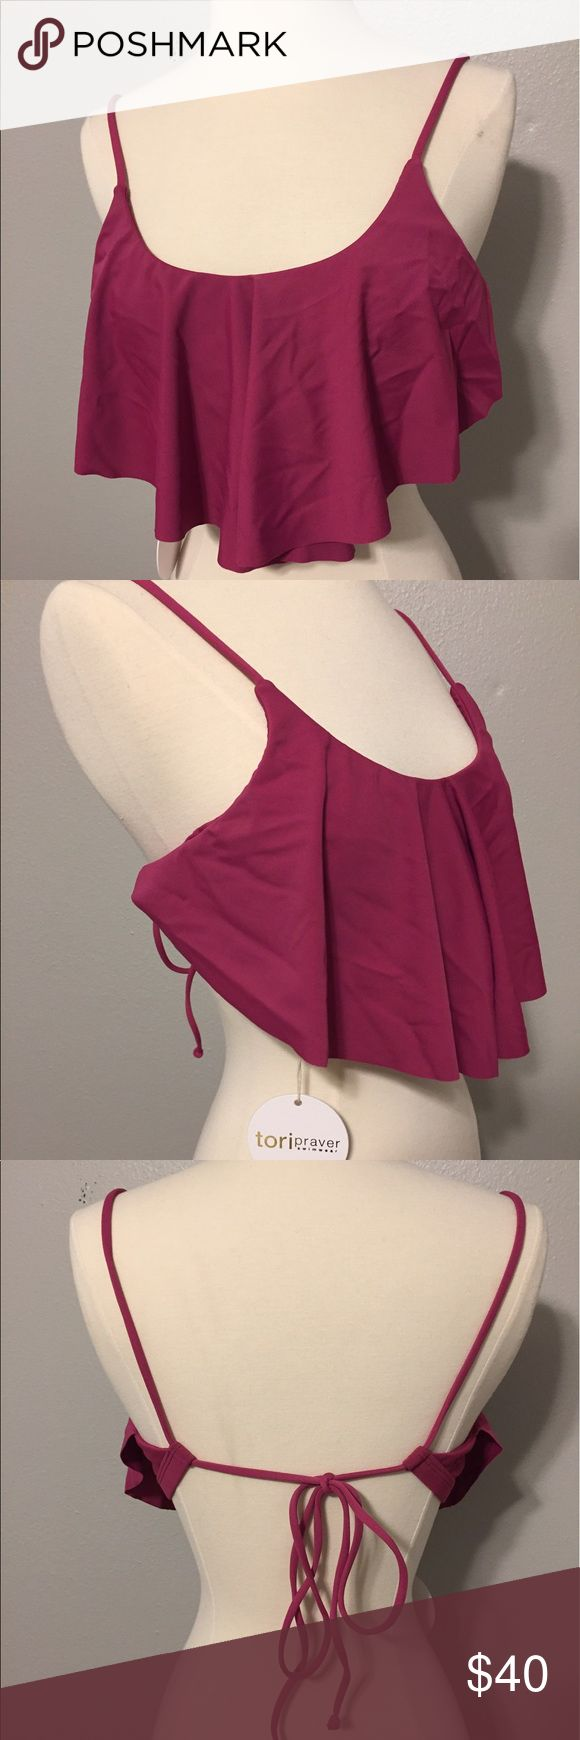 Tori Praver Flowy Swimsuit Top Never worn! Absolutely love this swimsuit top, ordered online, thought I would wear it and never did! Strings can be pulled tight to adjust the comfort of the top. Tori Praver Swimwear Swim Bikinis